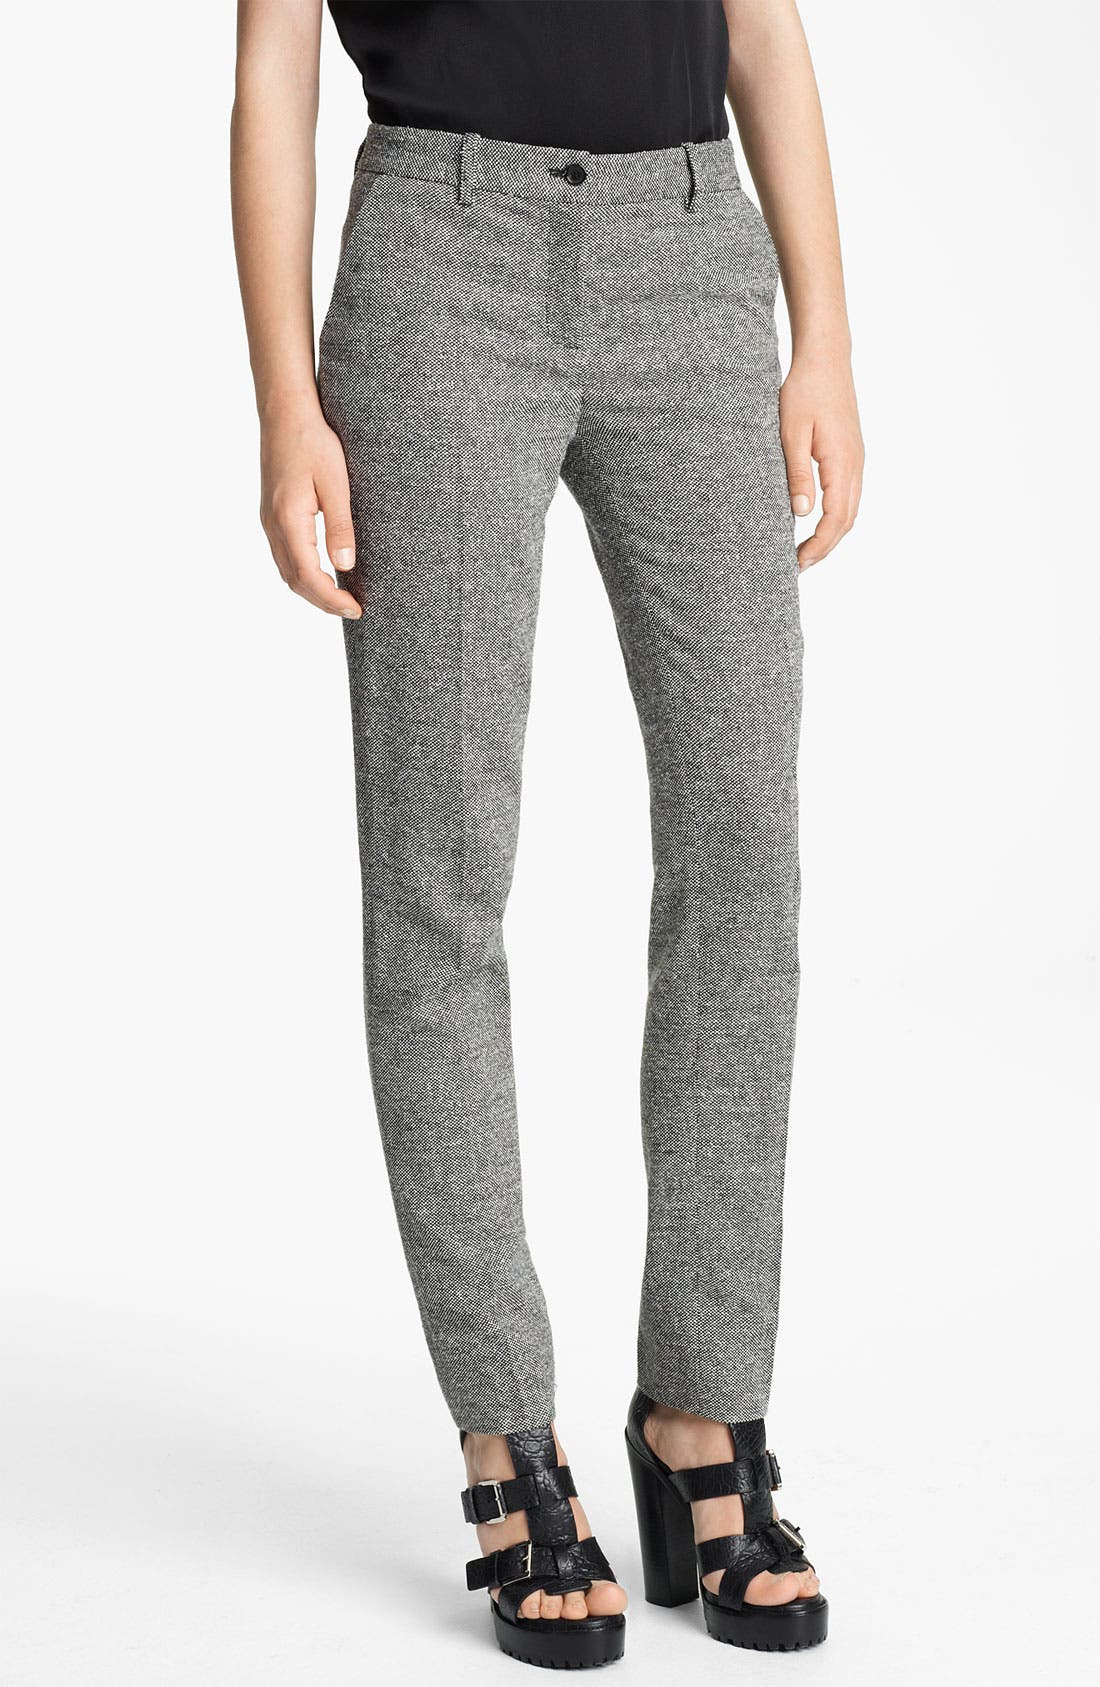 Main Image - Michael Kors 'Samantha' Skinny Donegal Tweed Pants